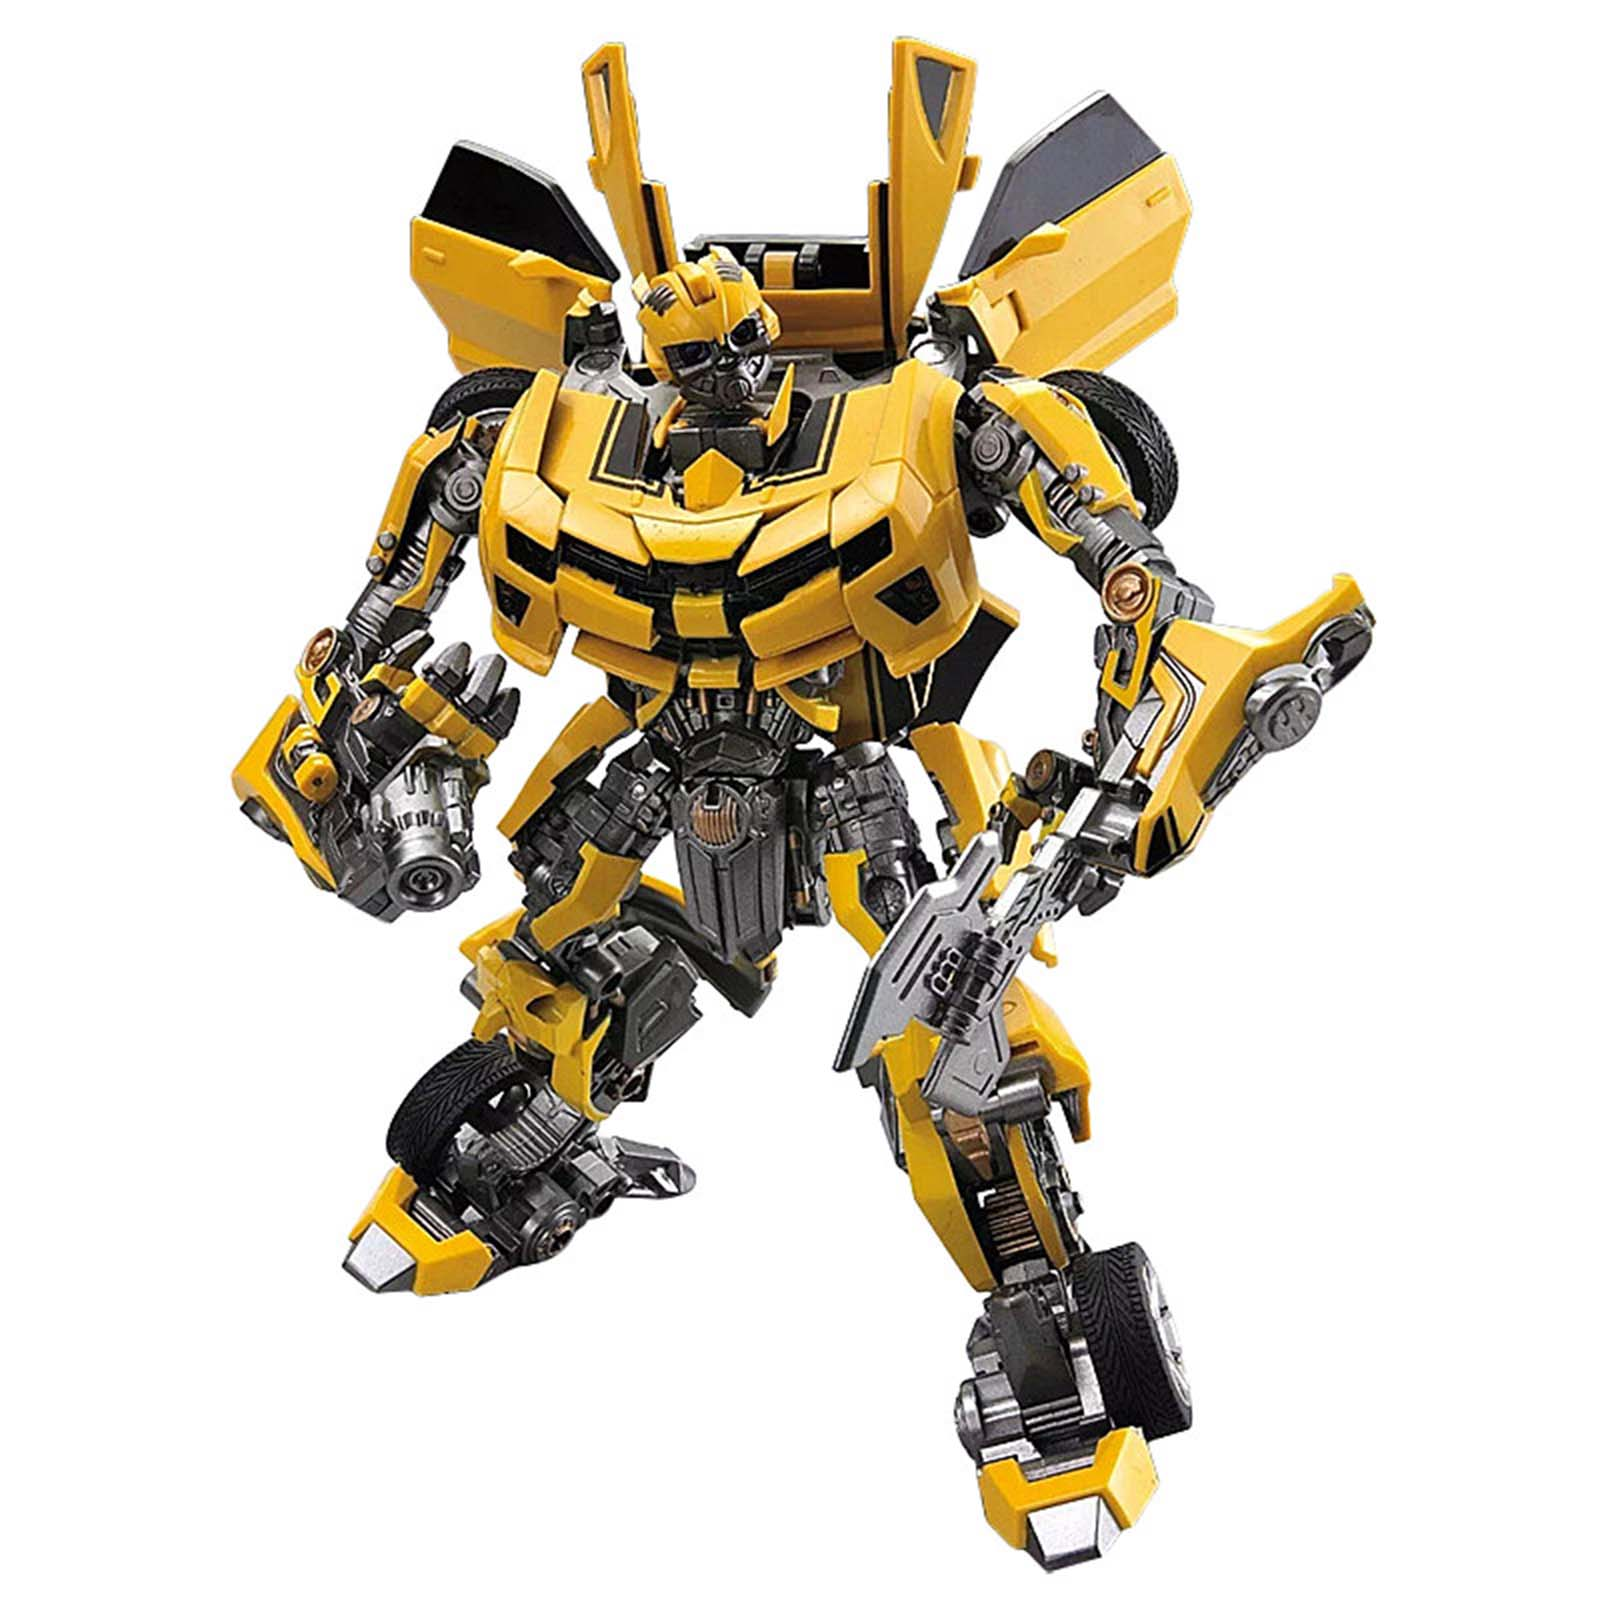 M03 WEIJIANG WJ Bumblebee Battle Hornet Transformers Action Figure Hot